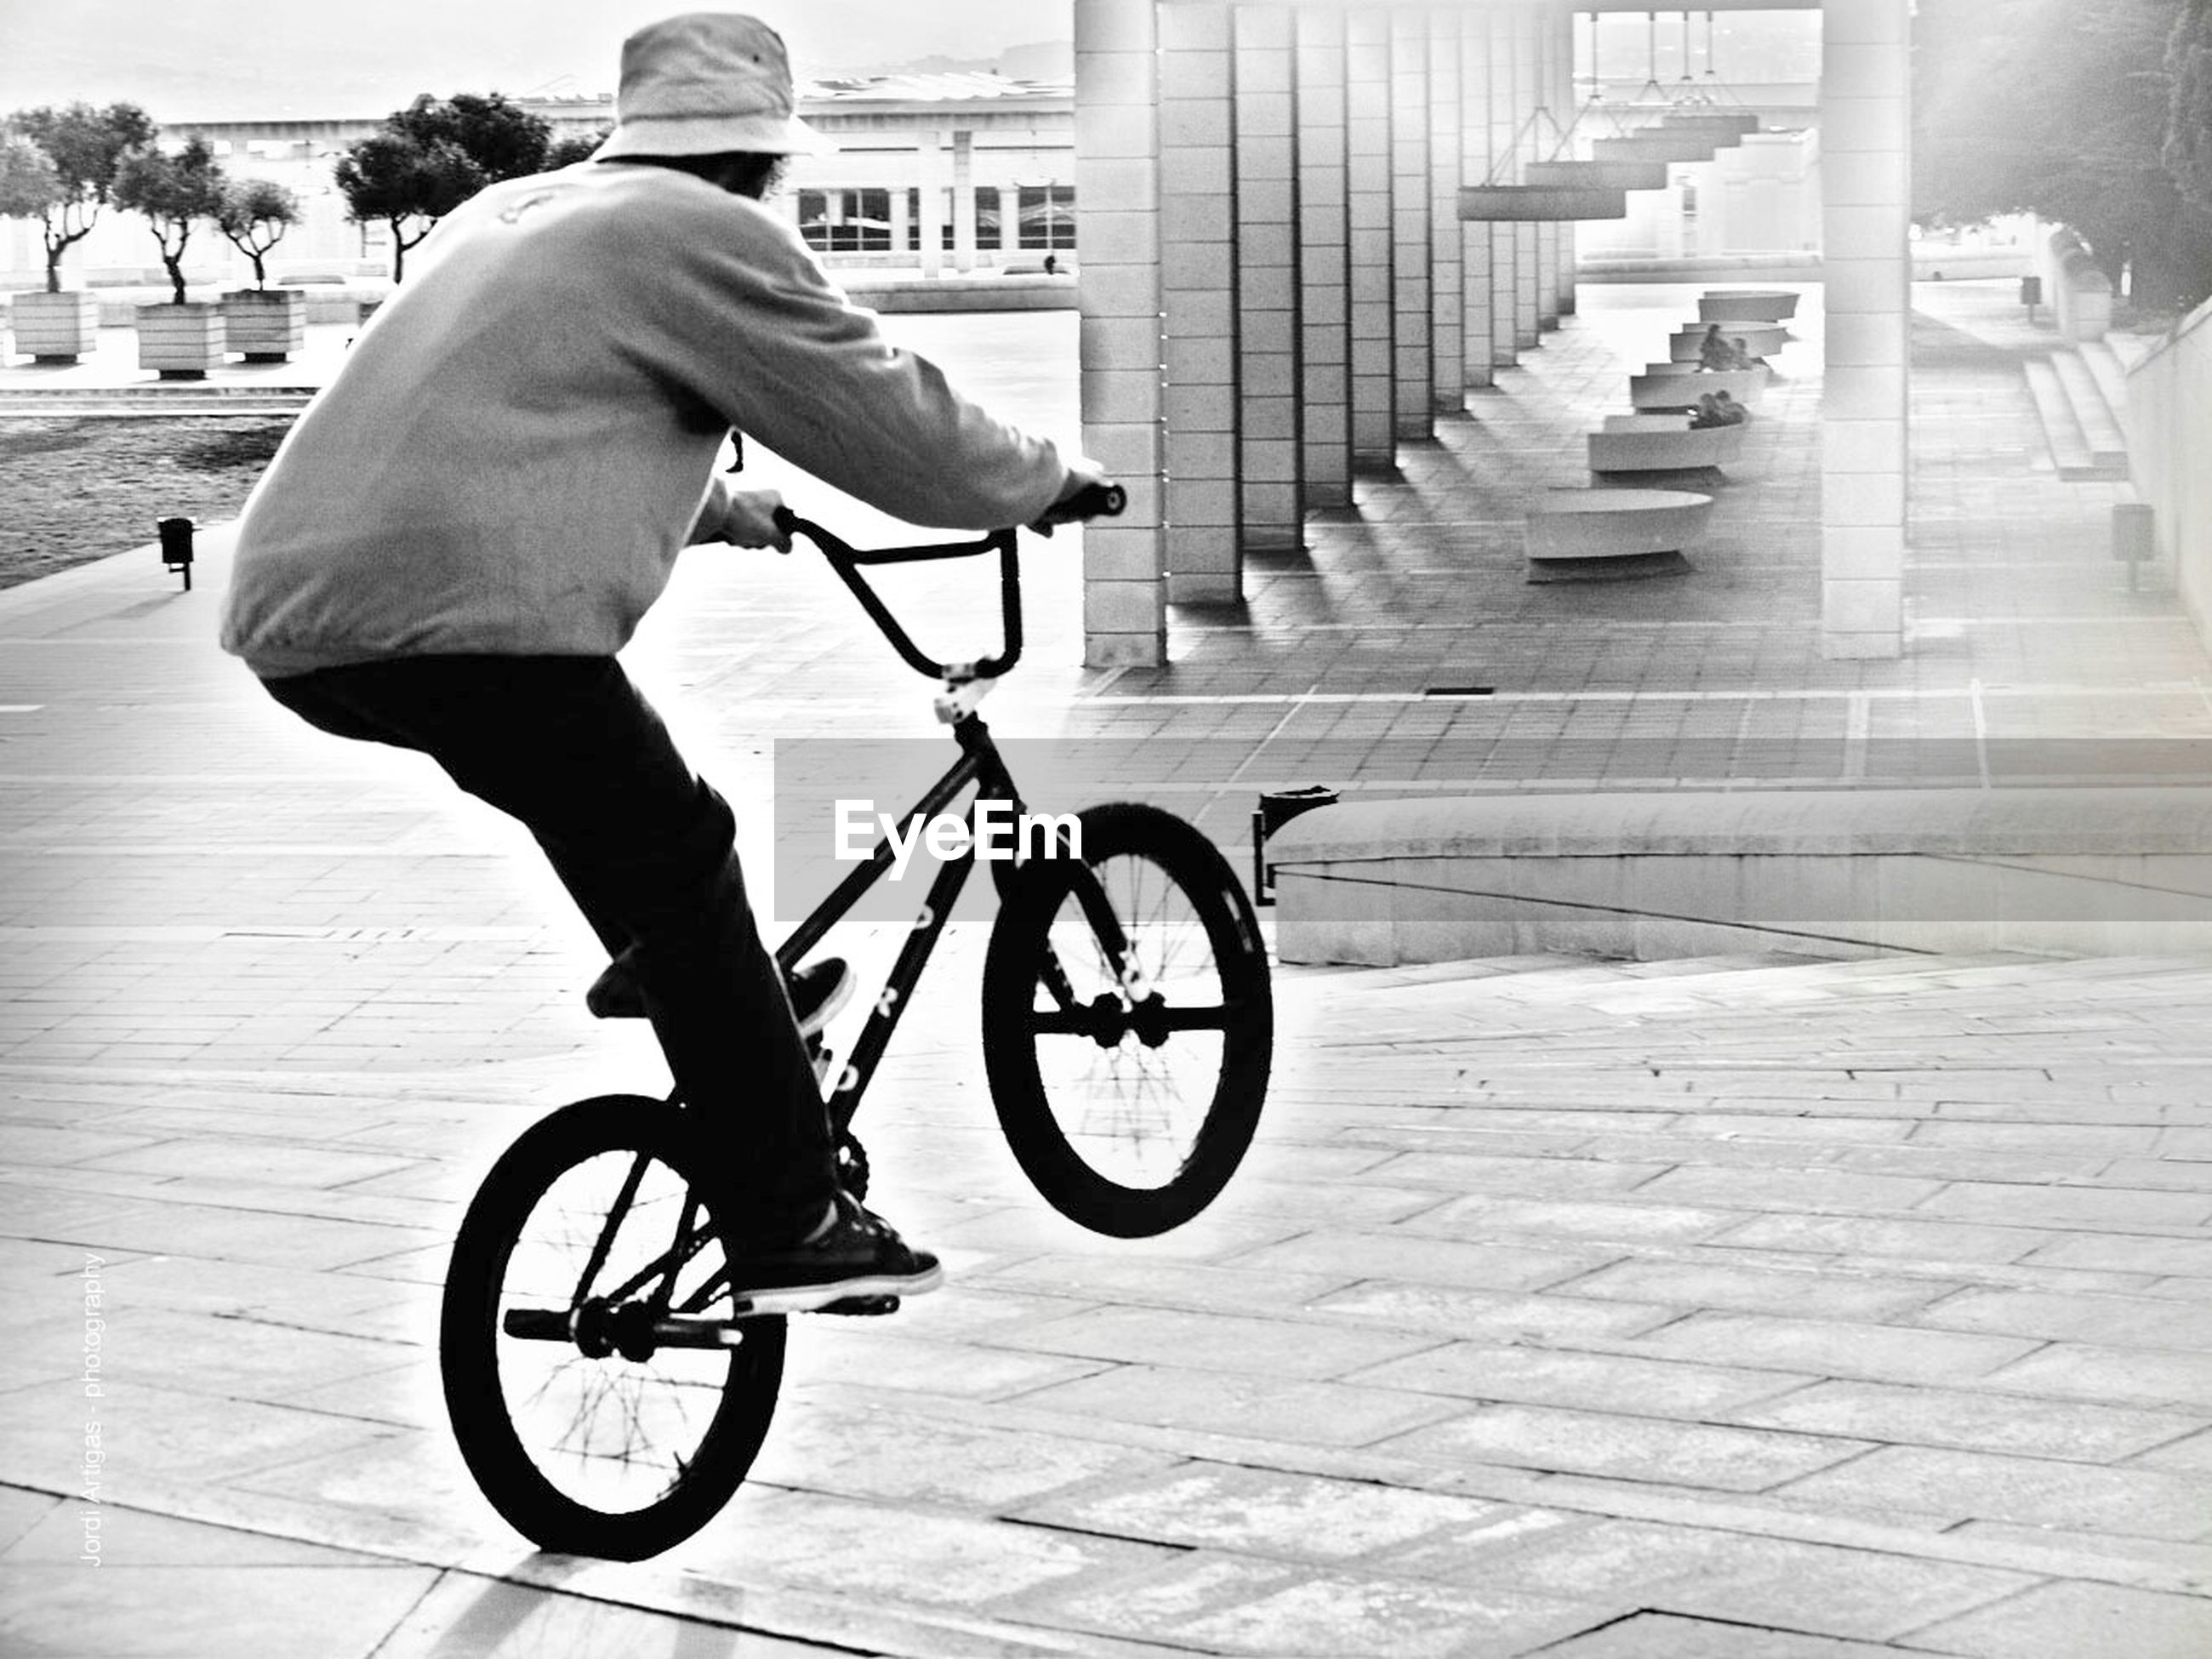 bicycle, transportation, mode of transport, lifestyles, land vehicle, full length, street, riding, side view, leisure activity, men, building exterior, cycling, casual clothing, on the move, road, city, architecture